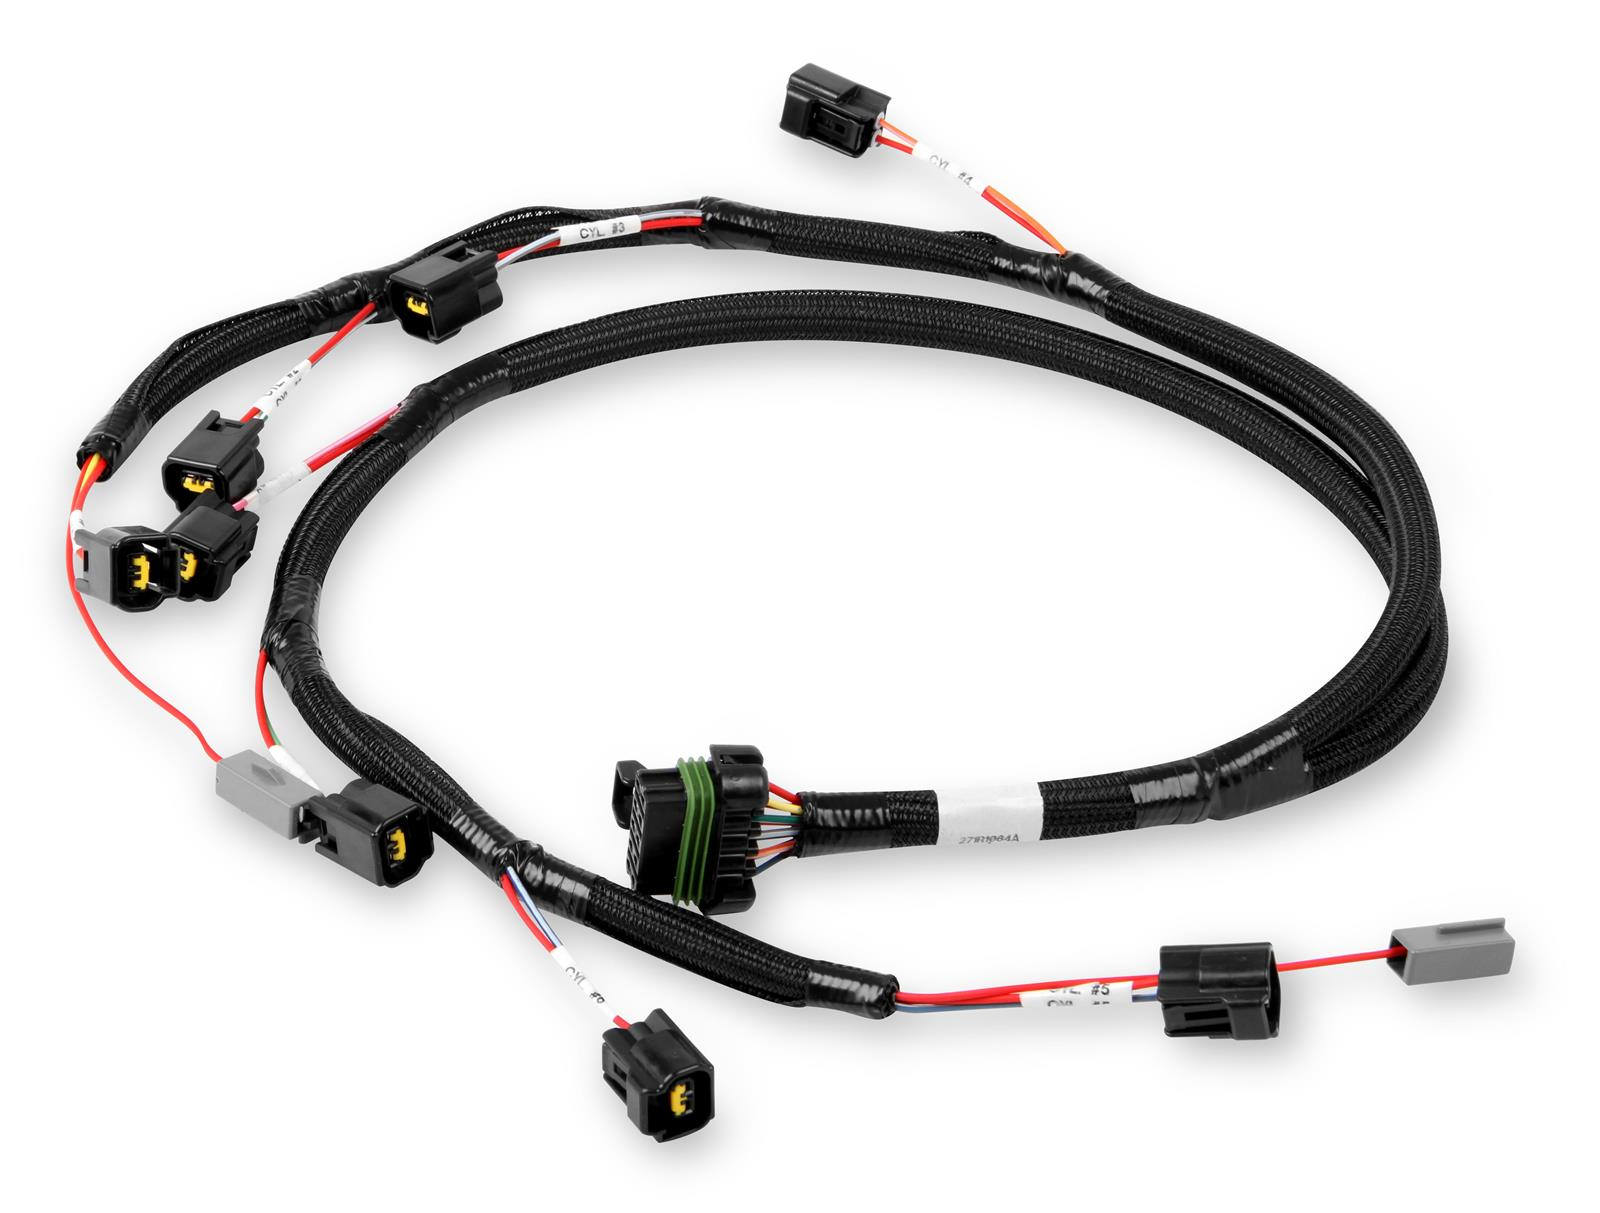 hight resolution of holley ford modular ignition coil harnesses 558 314 free shipping on orders over 99 at summit racing